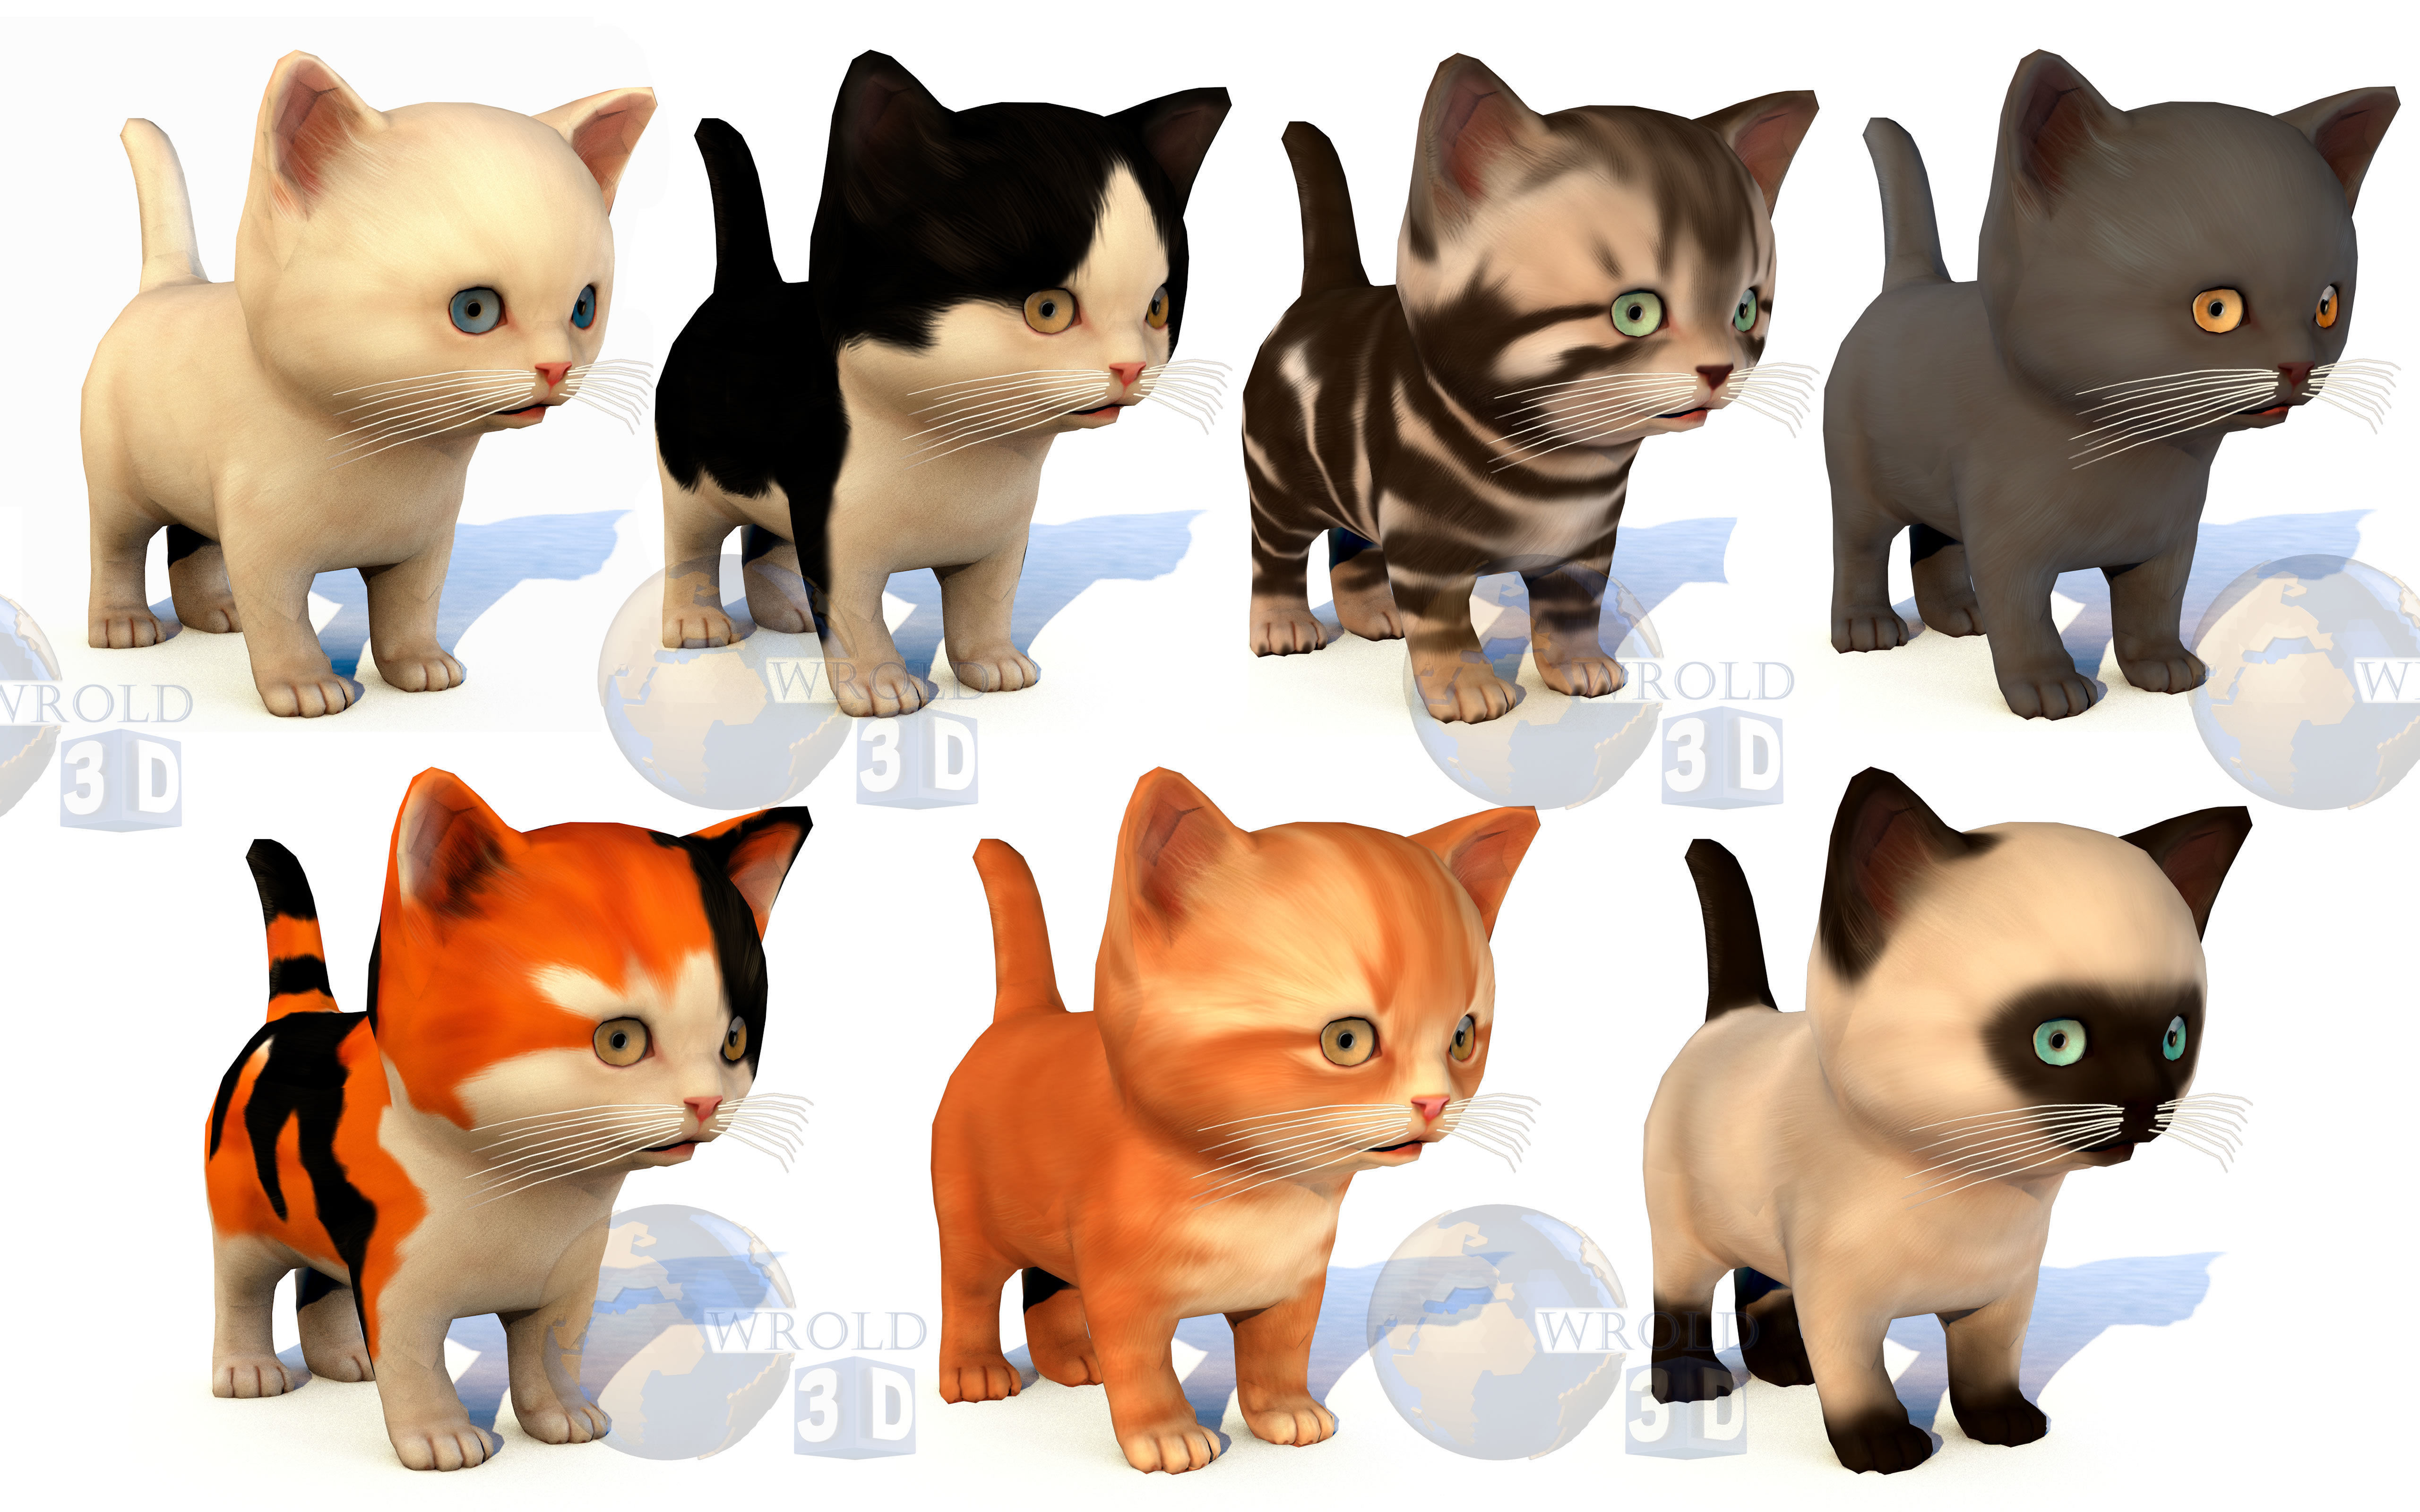 Cute Kitten Rigged Lowpoly 3D Model Collection Pack